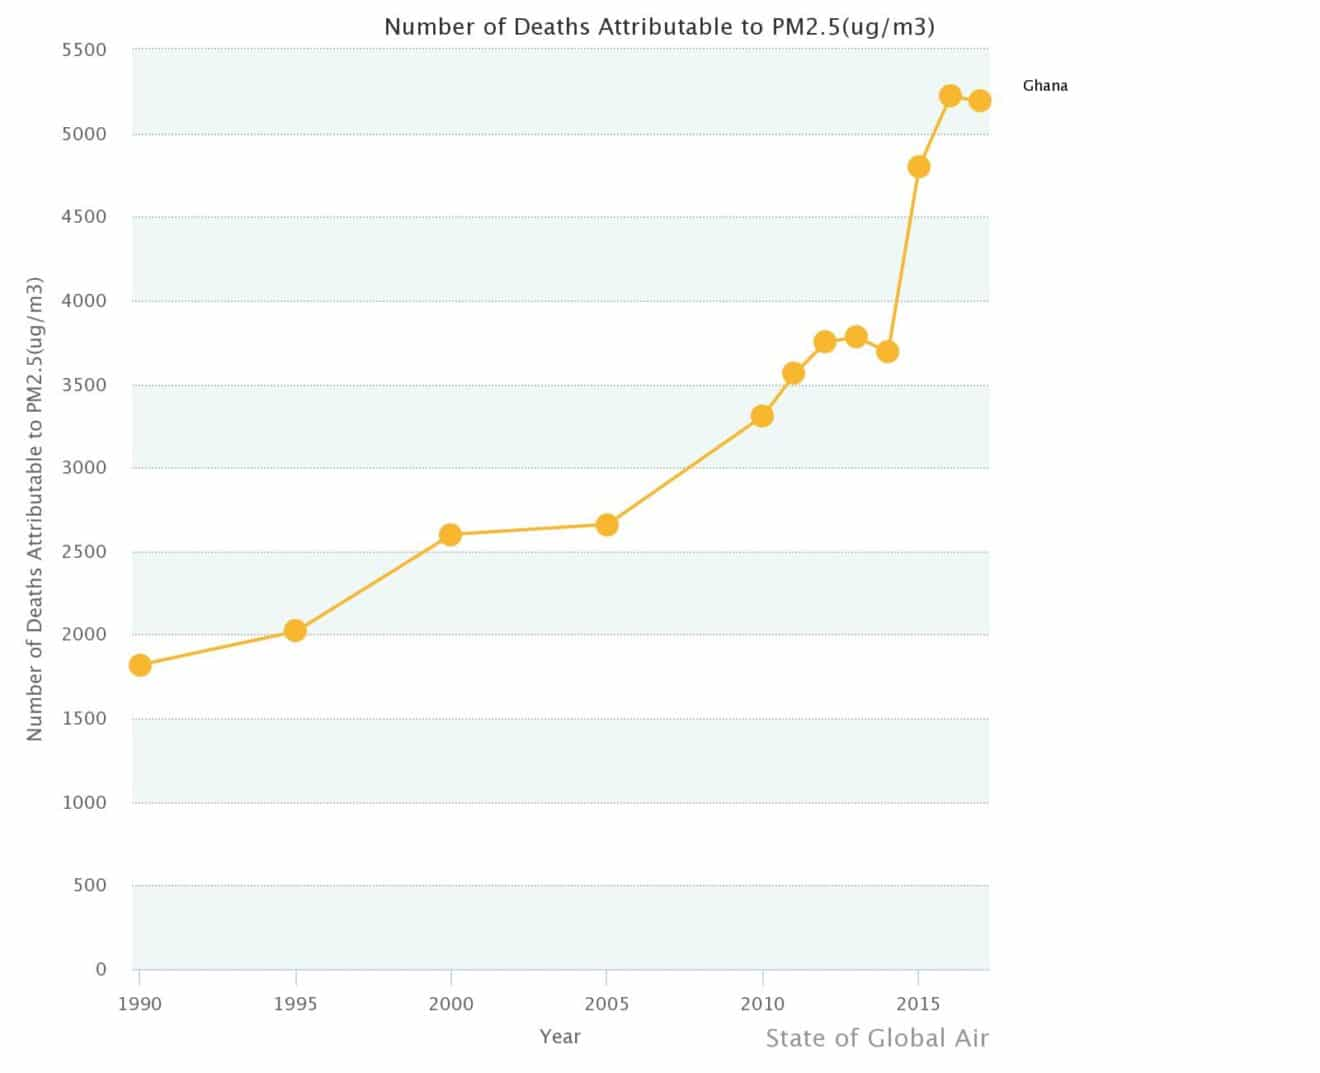 Number of Deaths Attributable to PM2.5 in Ghana between 1990 and 2017. Source: Health Effects Institute and The Institute for Health Metrics and Evaluations